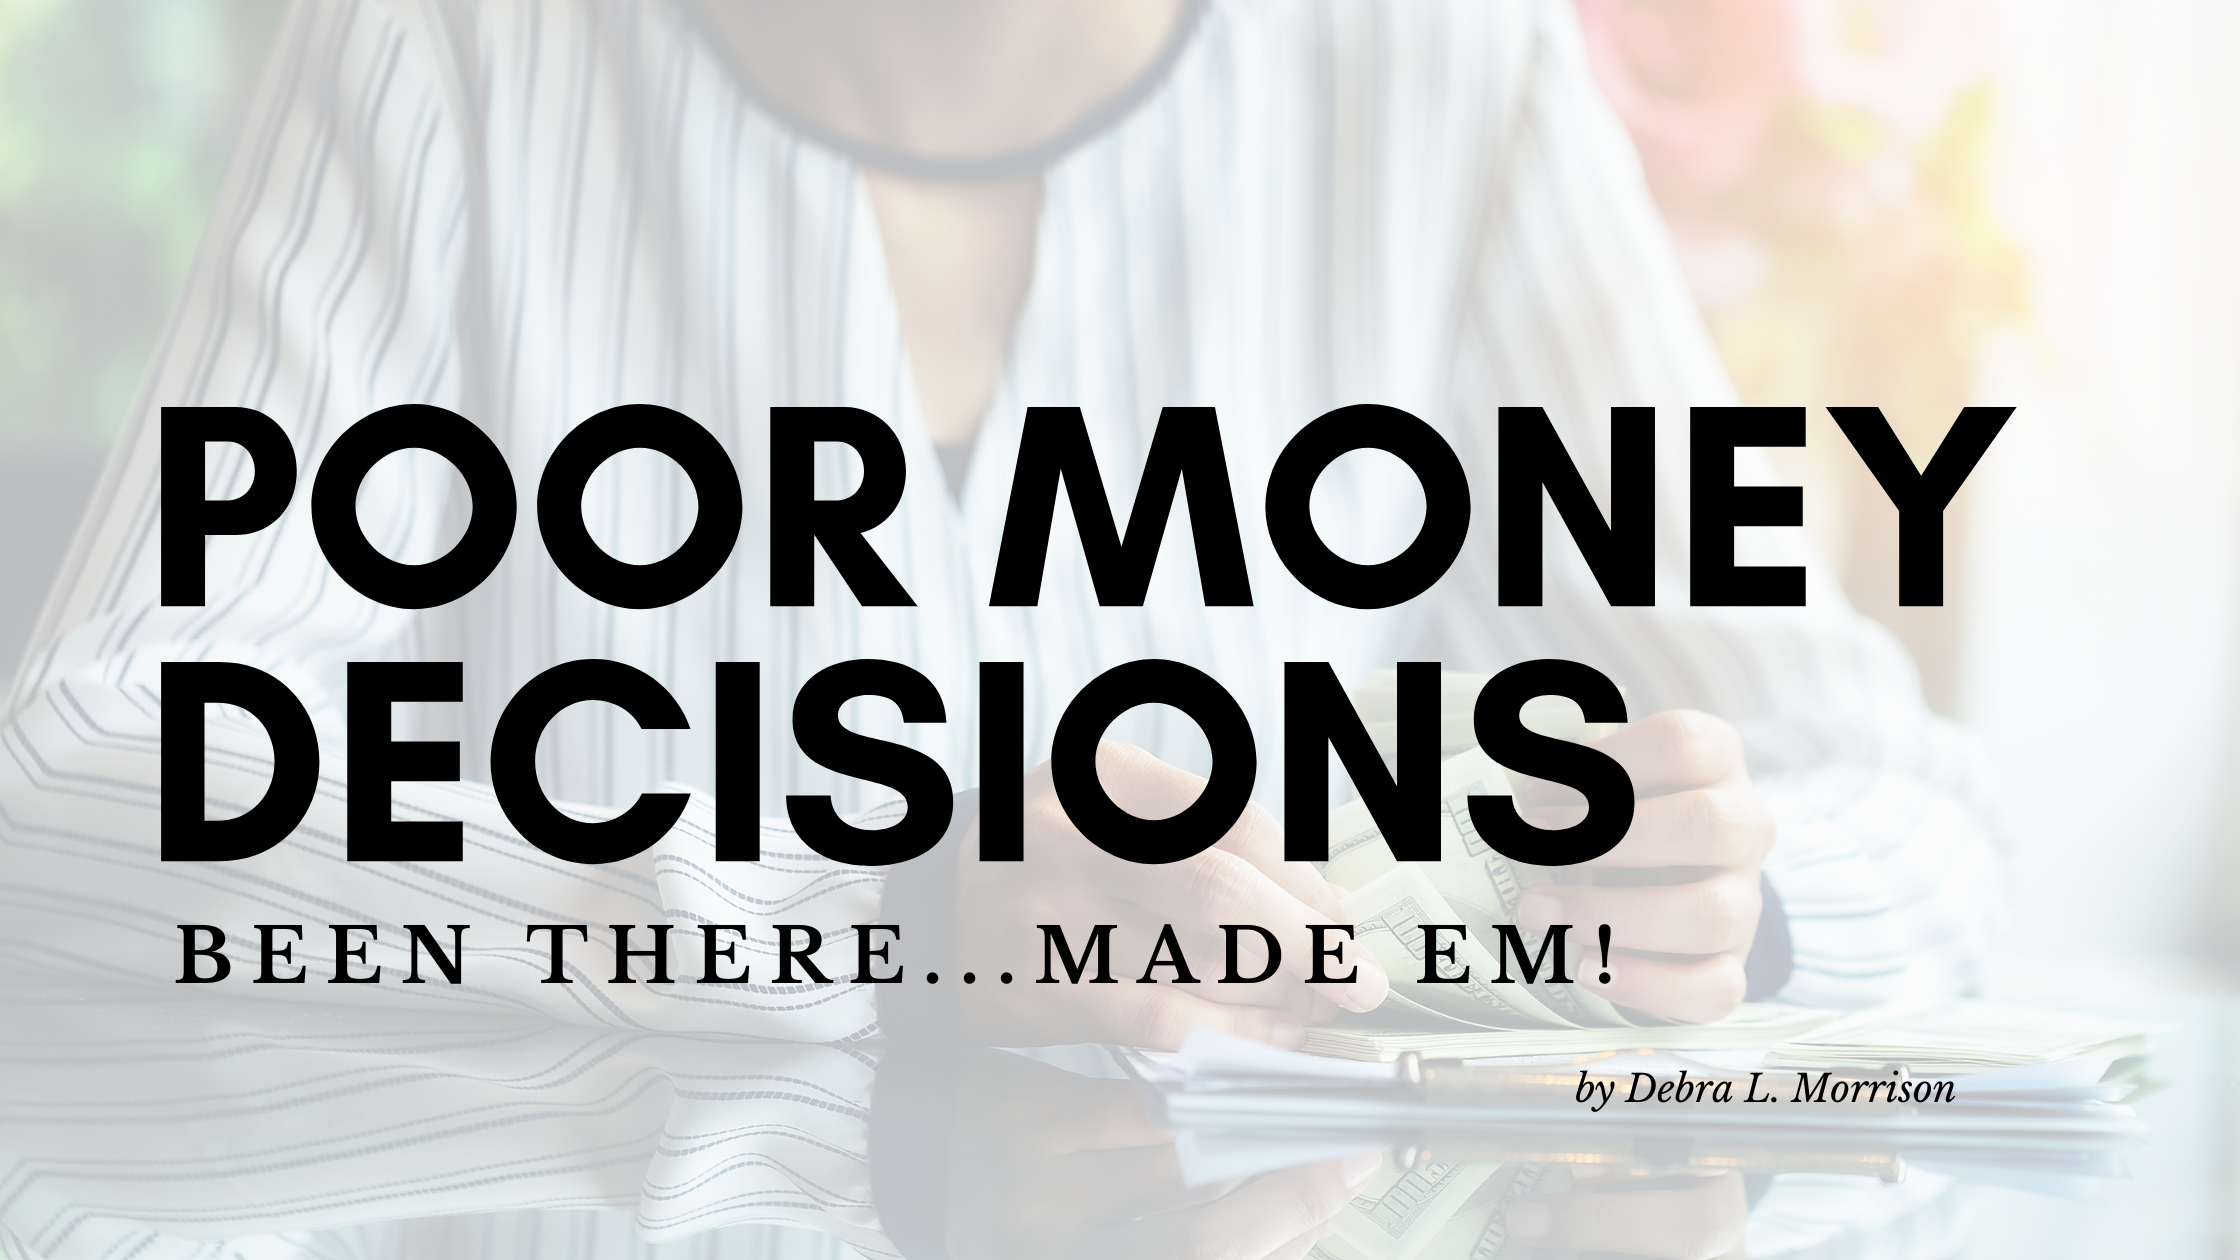 Poor Money Decisions – Been there…made 'em!